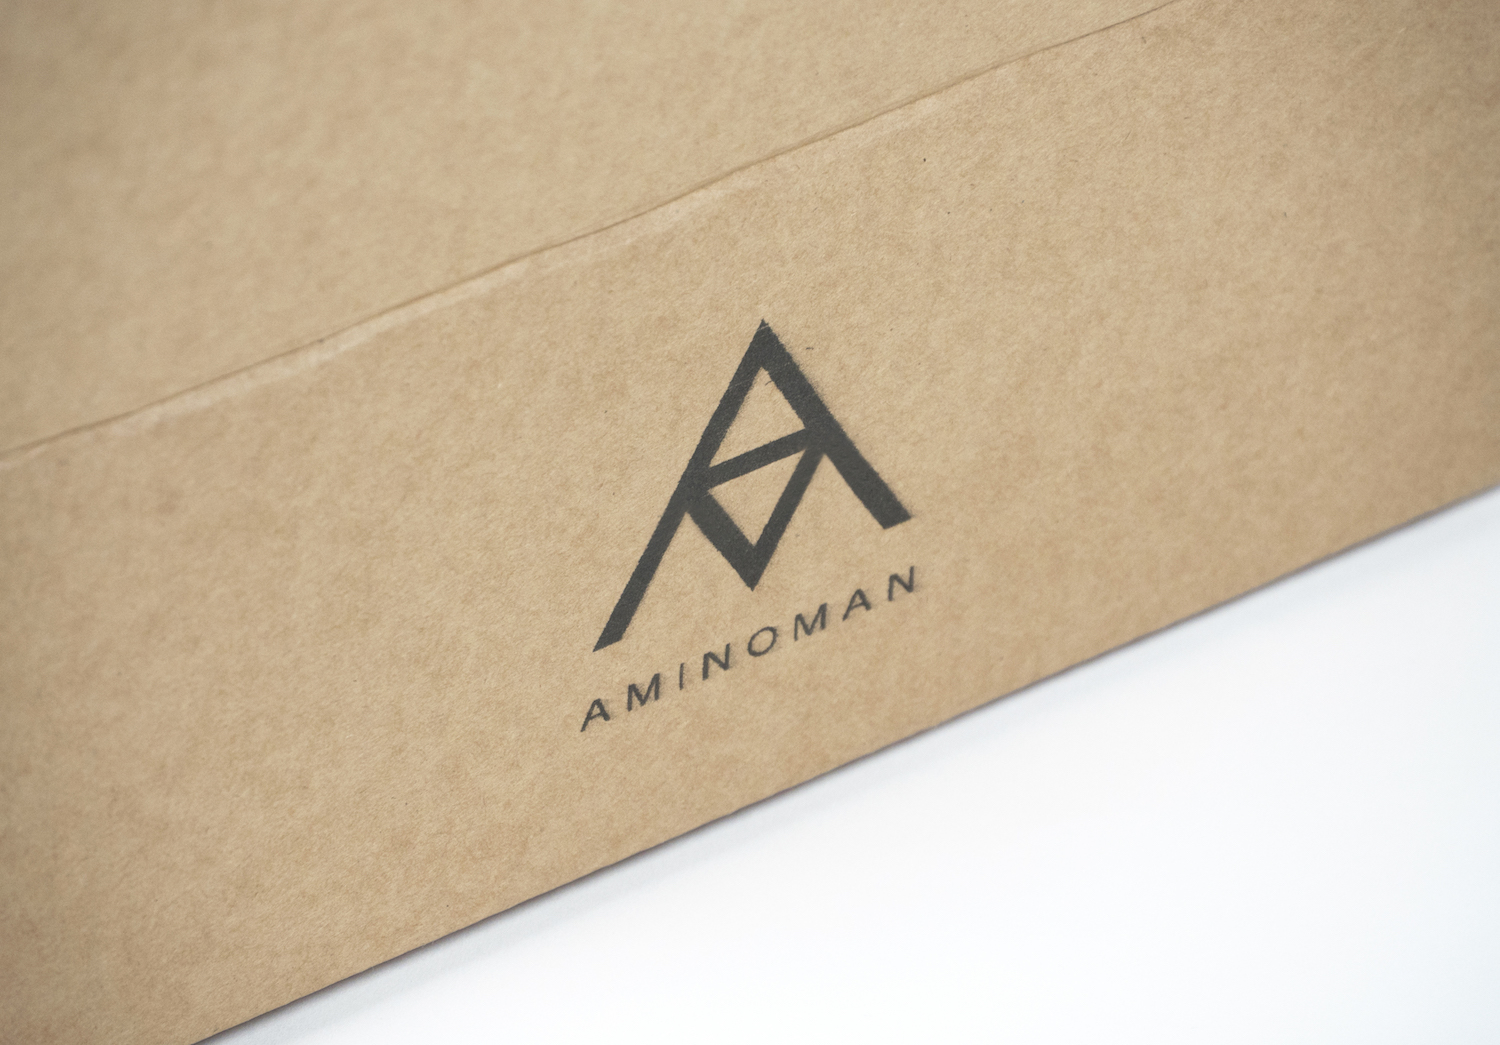 Printed box with an example logo